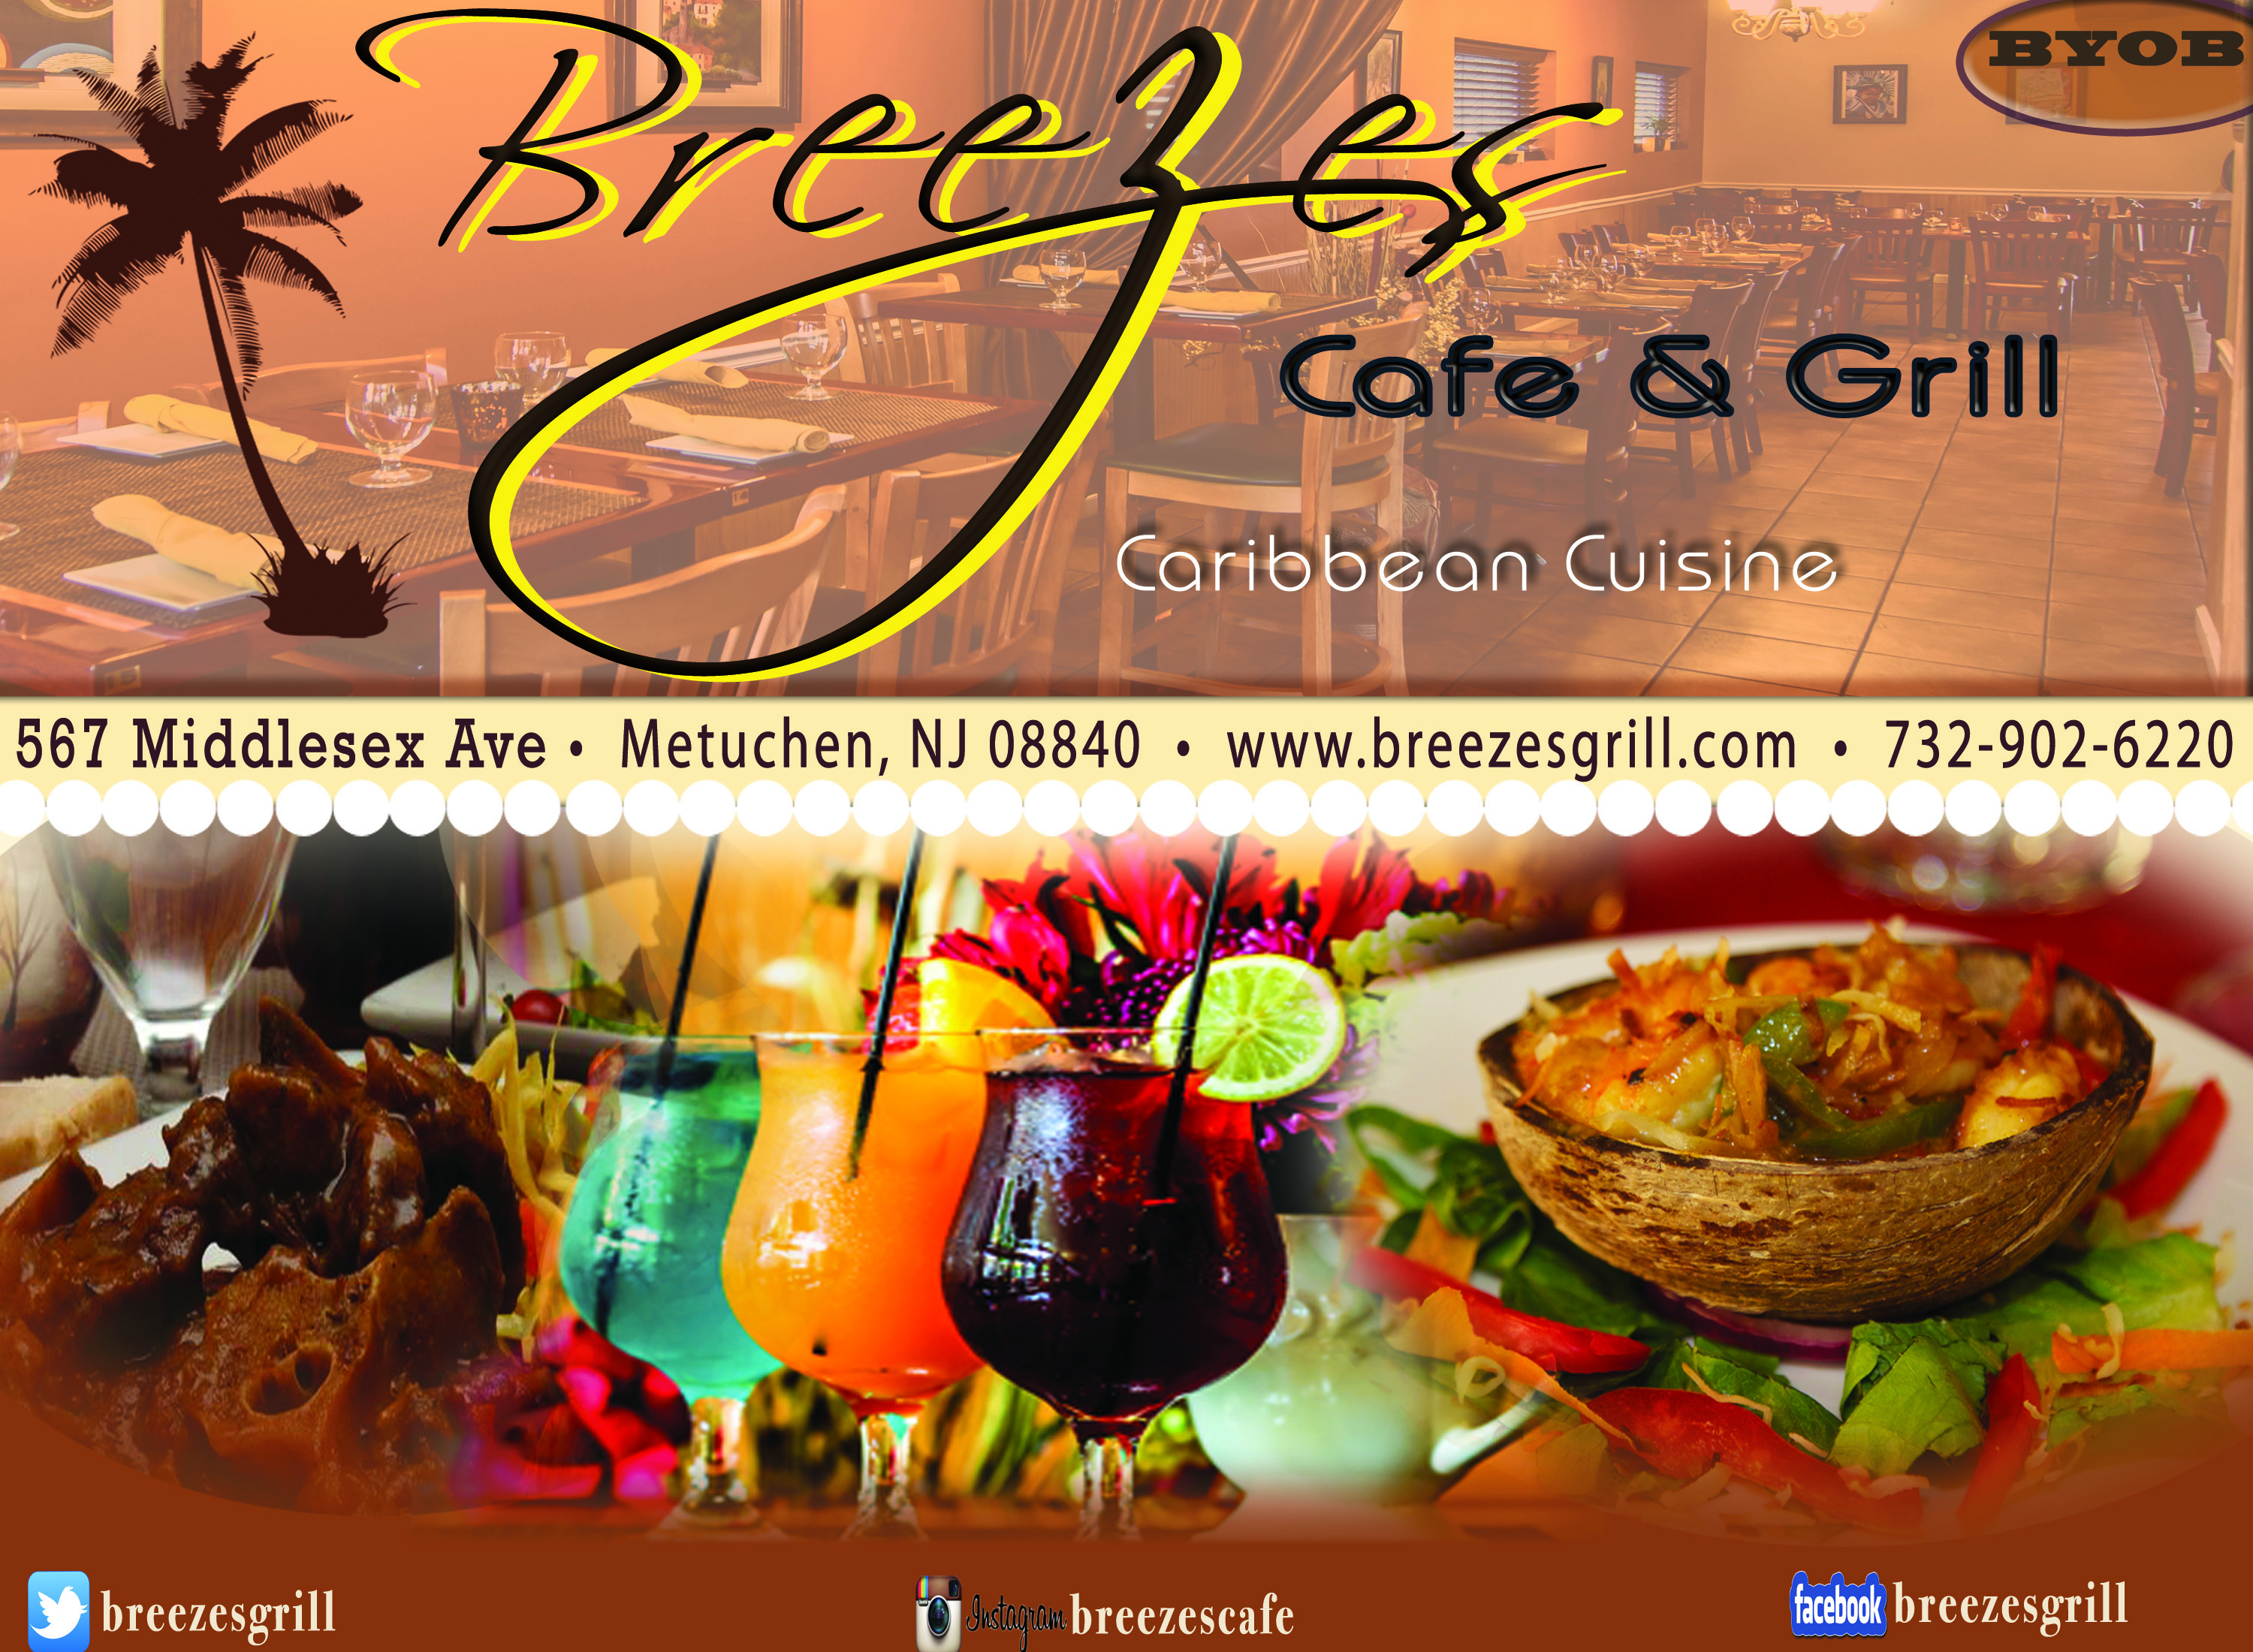 Testimonial Tuesday: Breezes Cafe and Grill